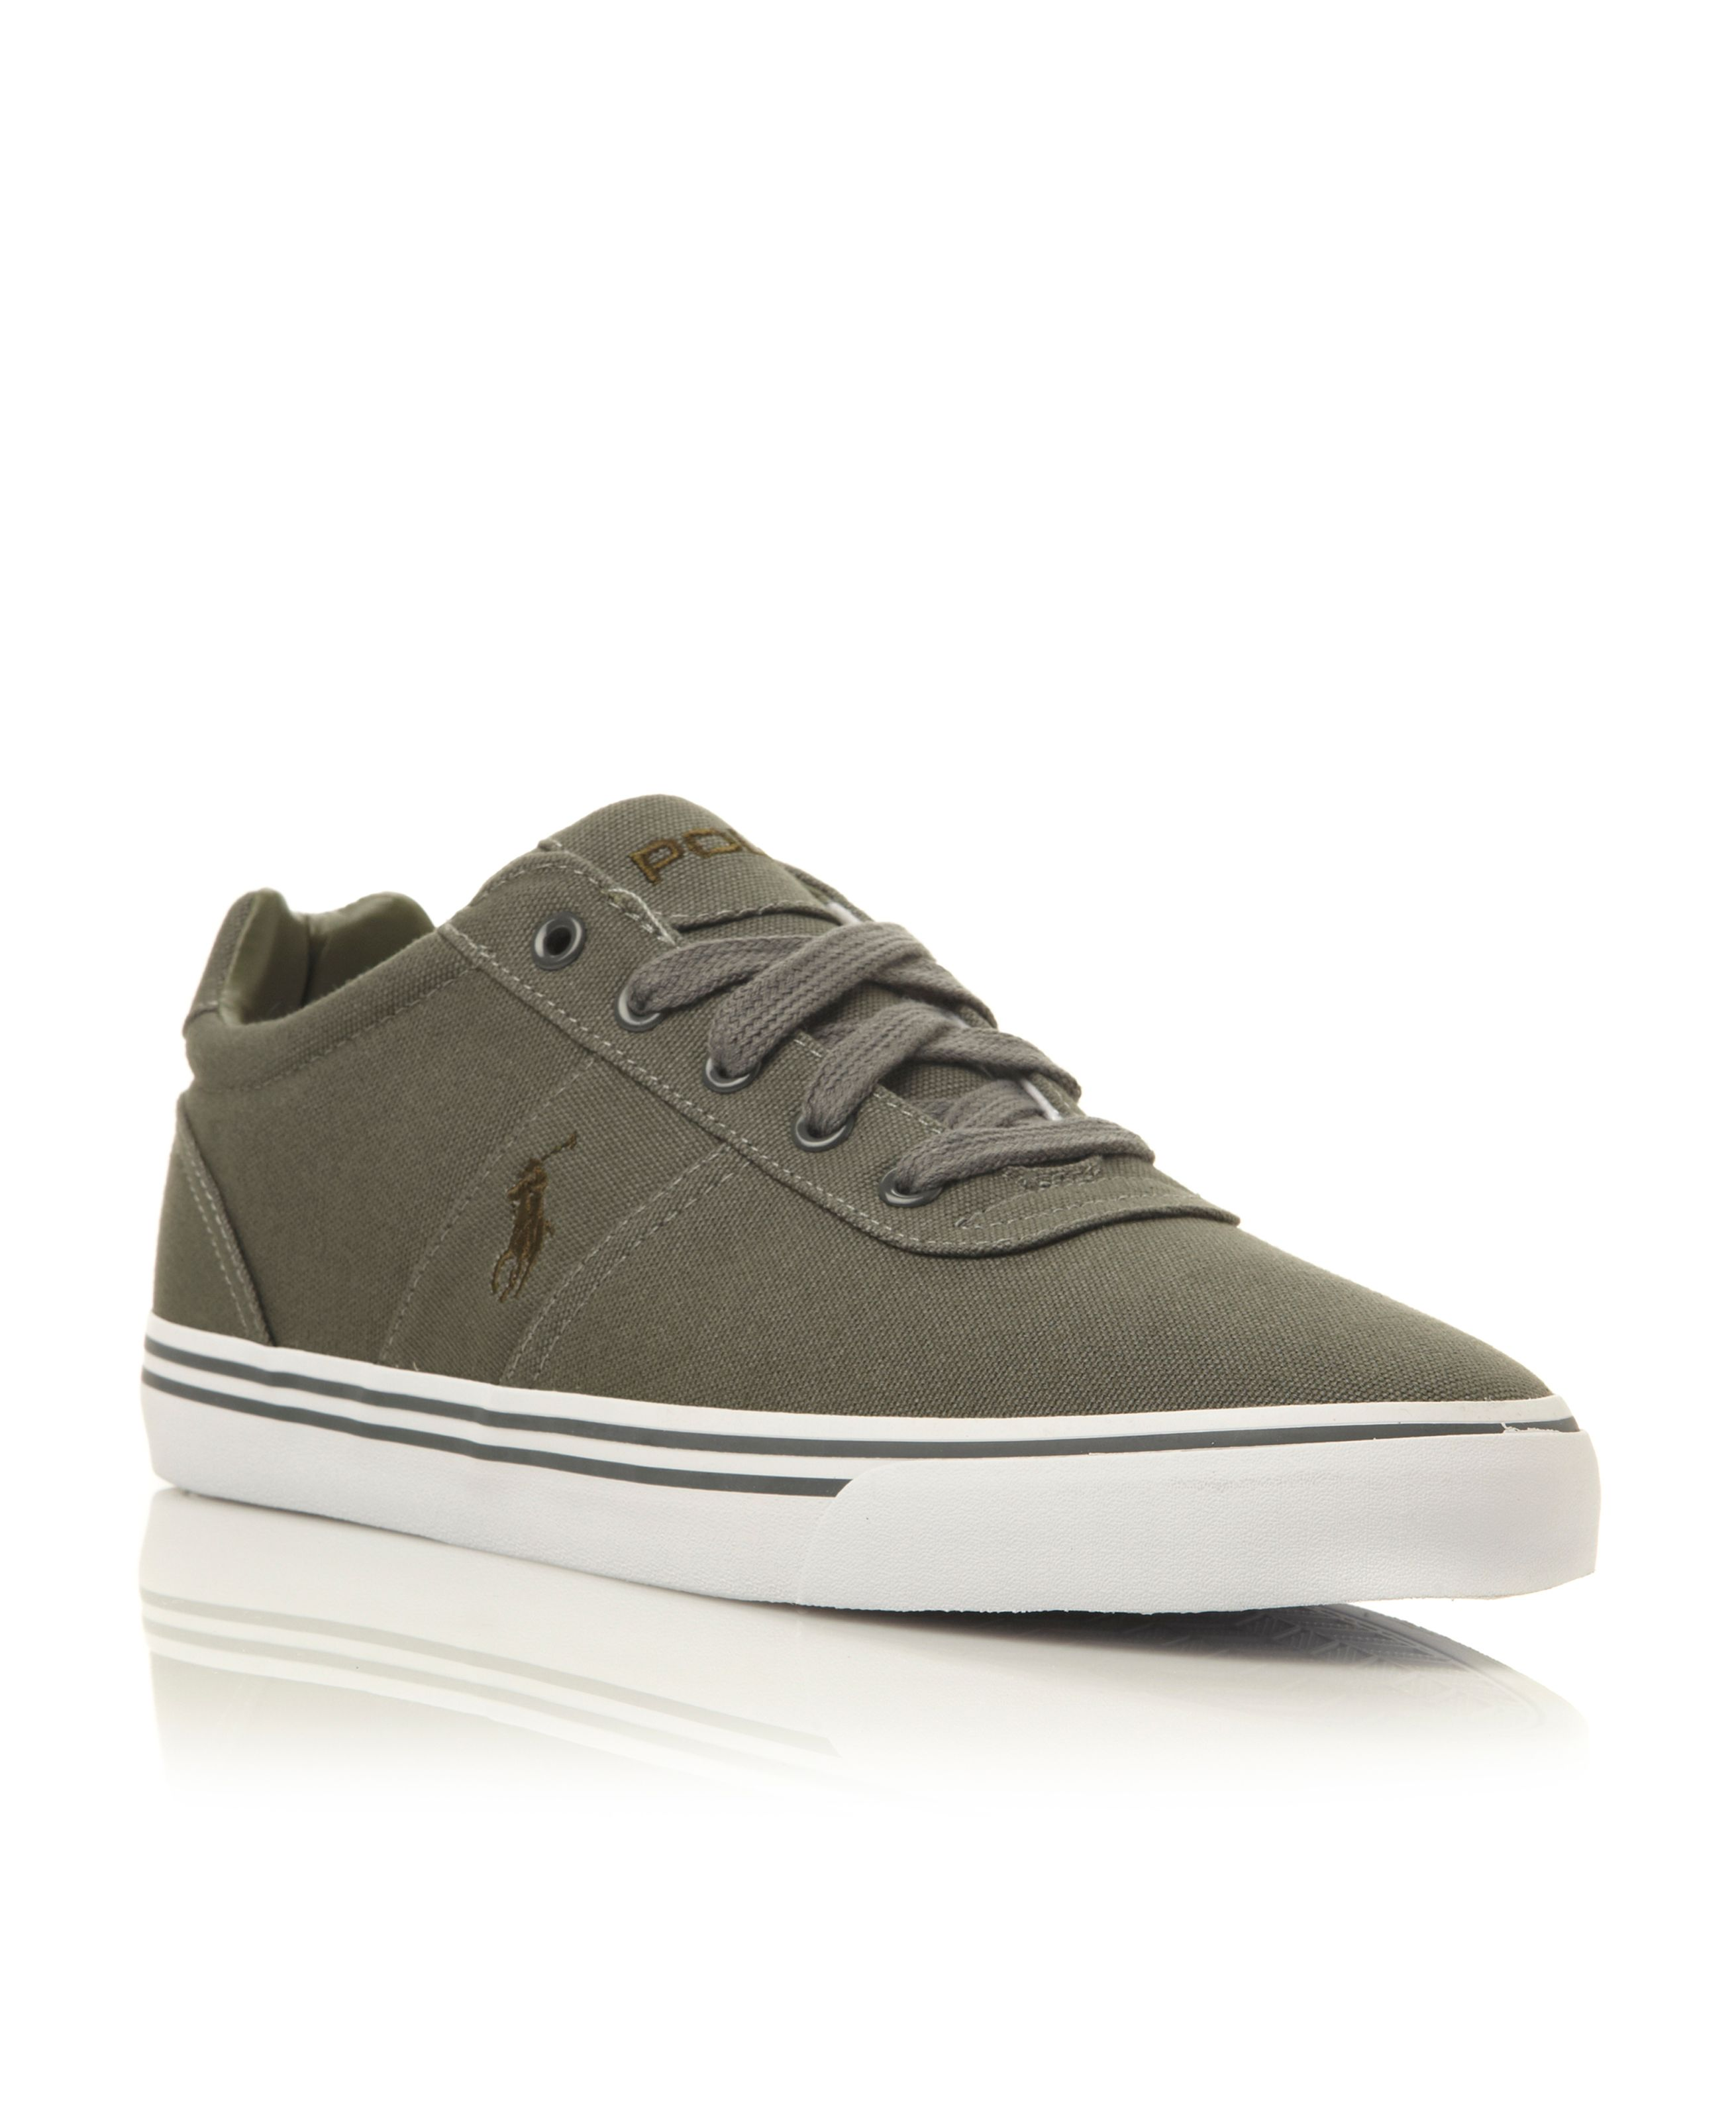 Hanford-ne-vulcanised canvas sneaker